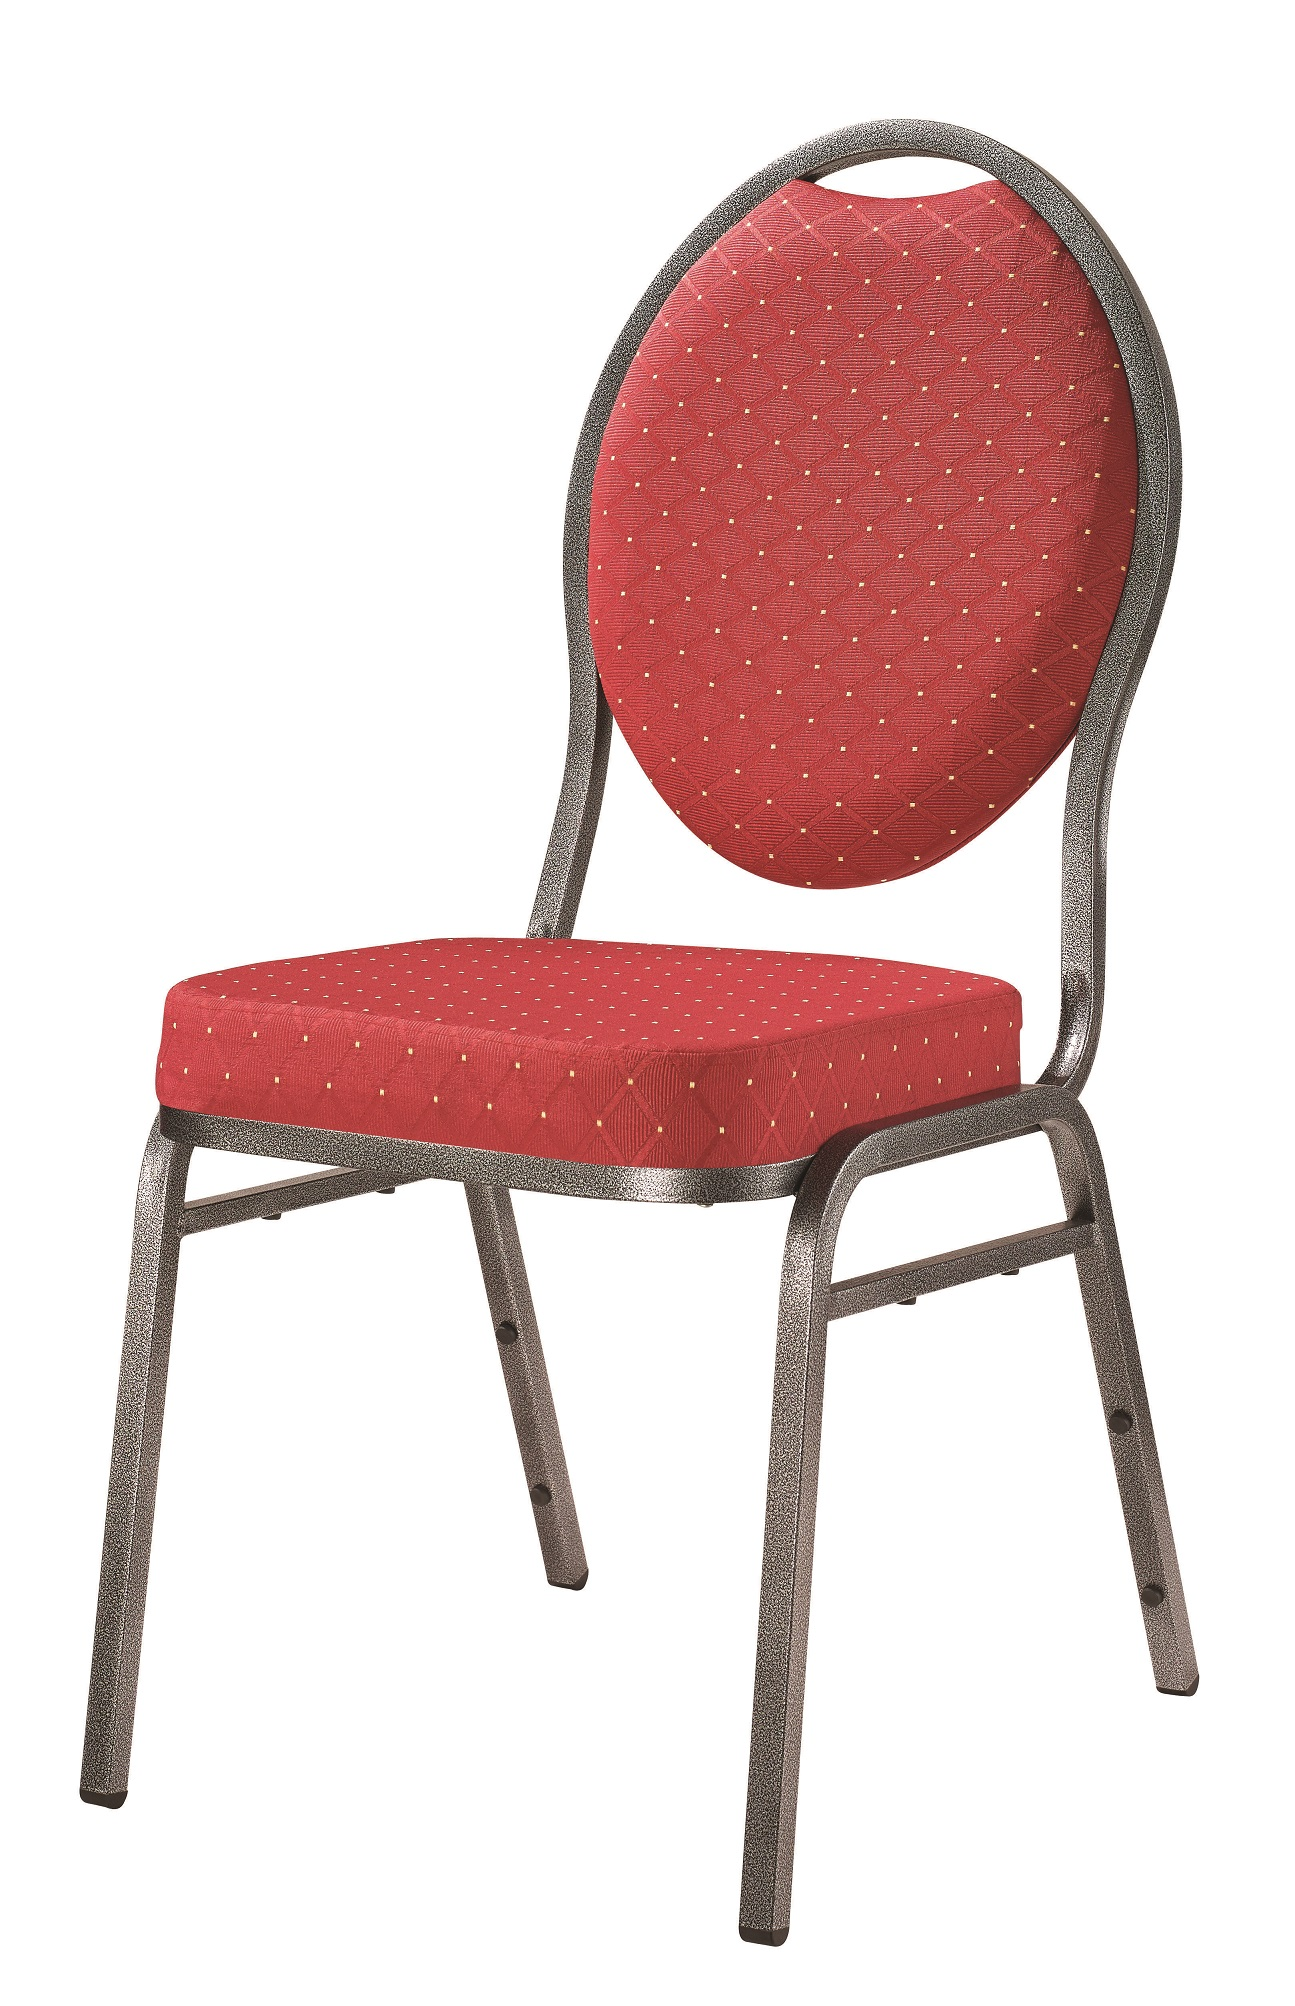 steel chair for hotel bed bath and beyond patio covers contract interiors conference chairs